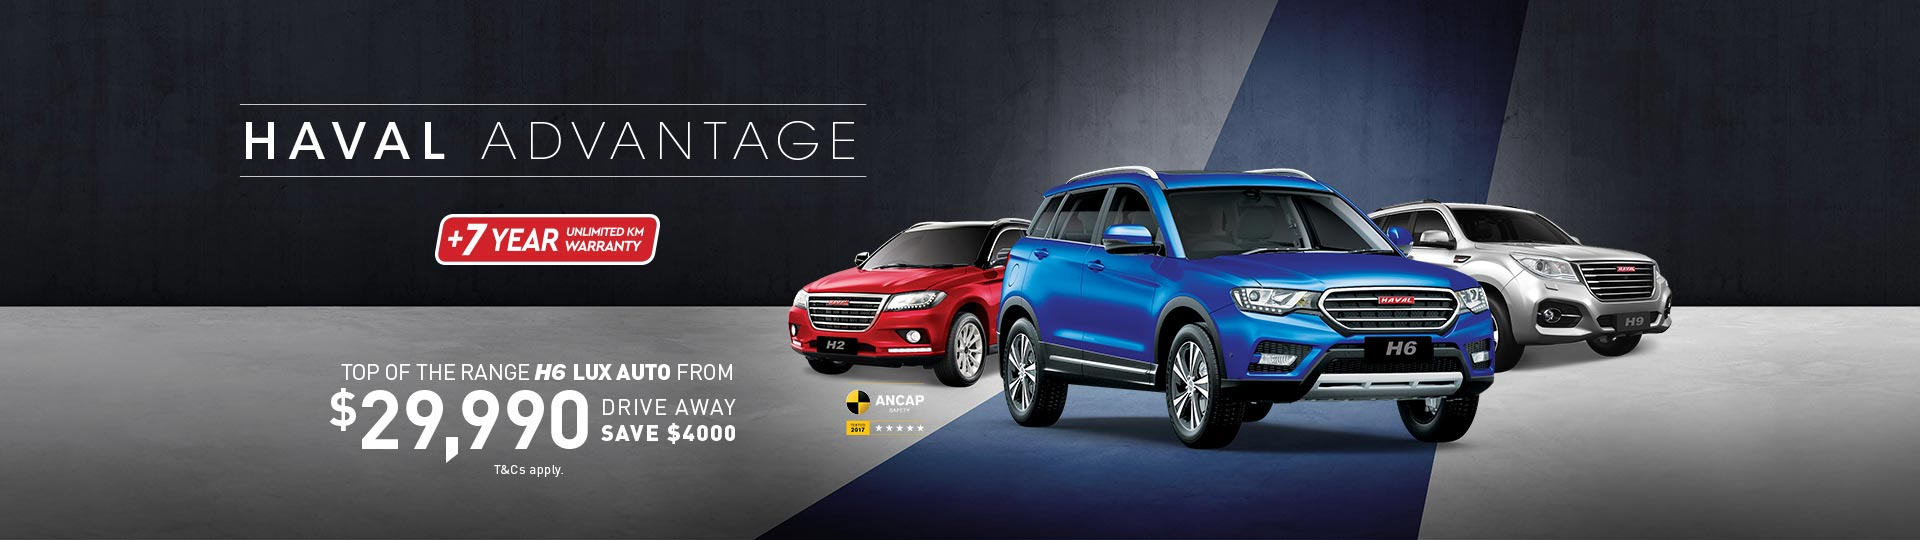 HAVAL Advantage